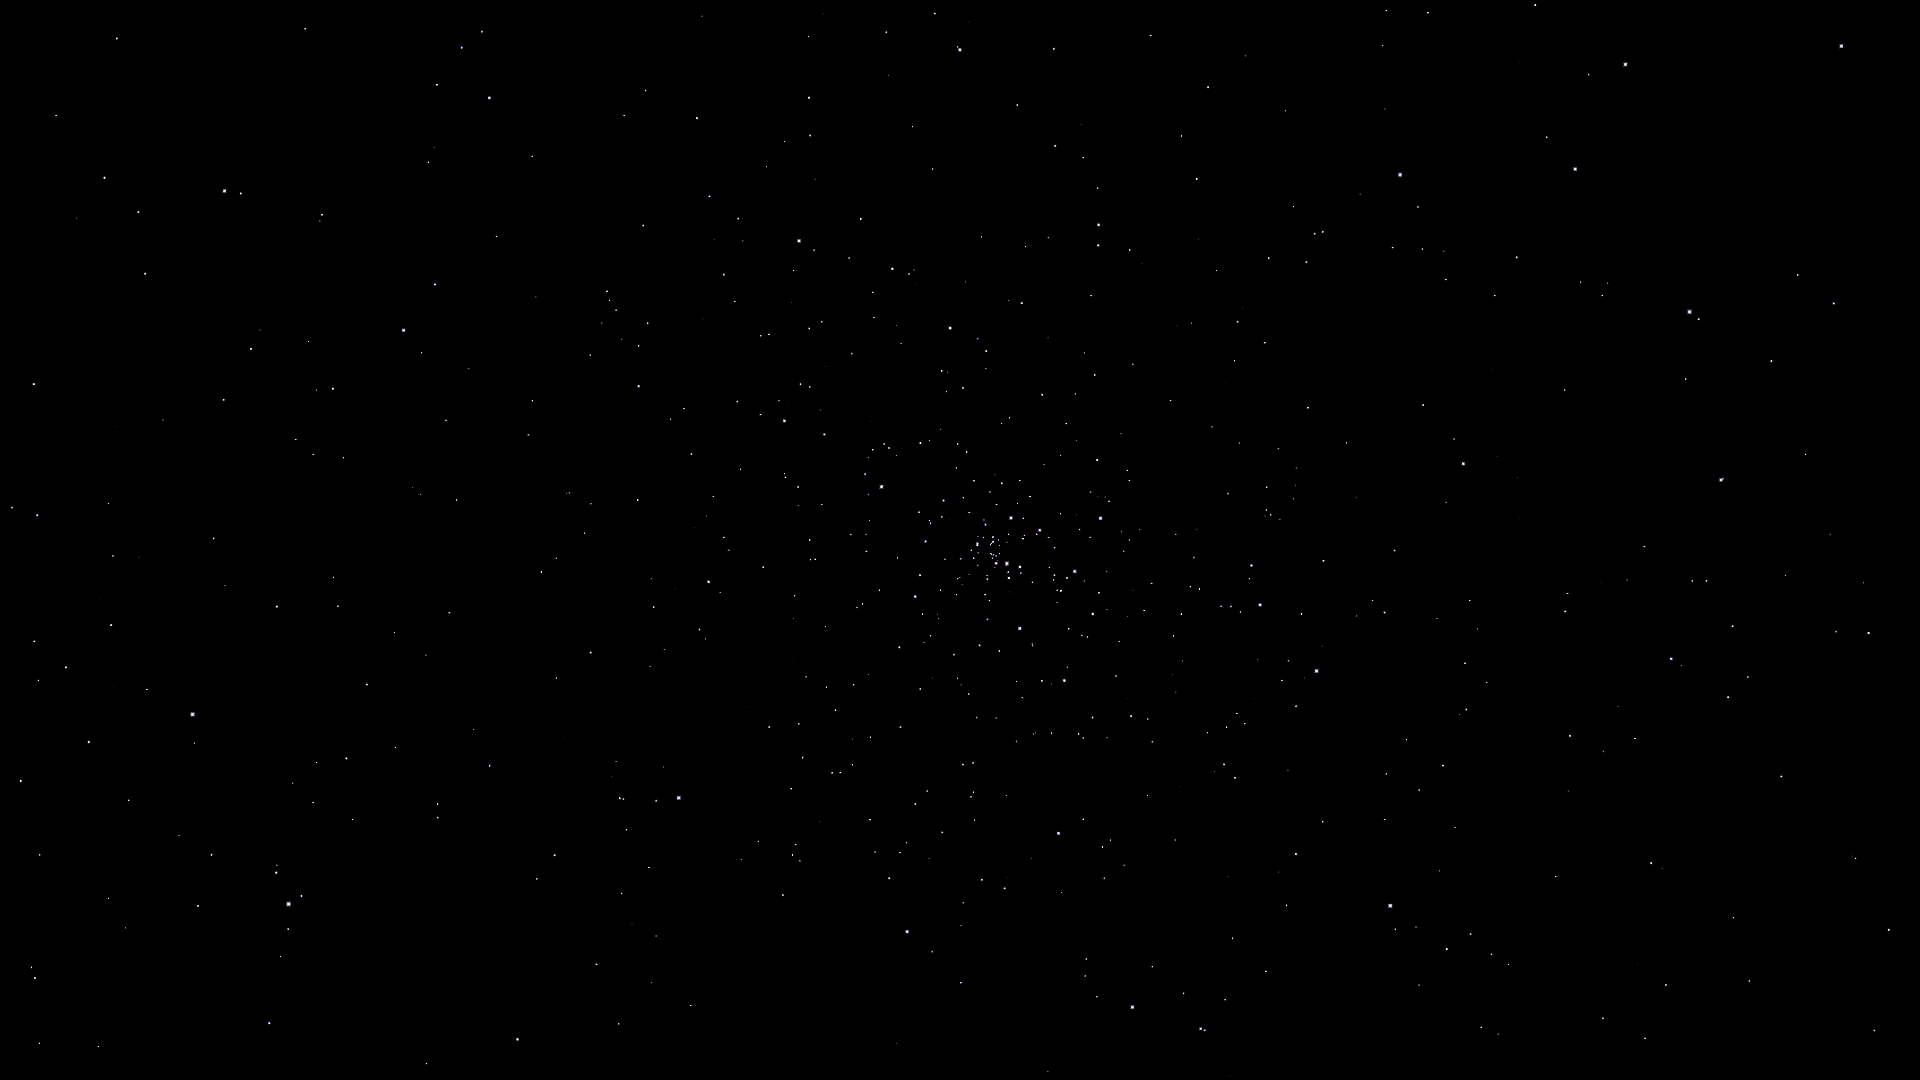 Wallpaper i made out of the CubeWorld night sky [1920x1080